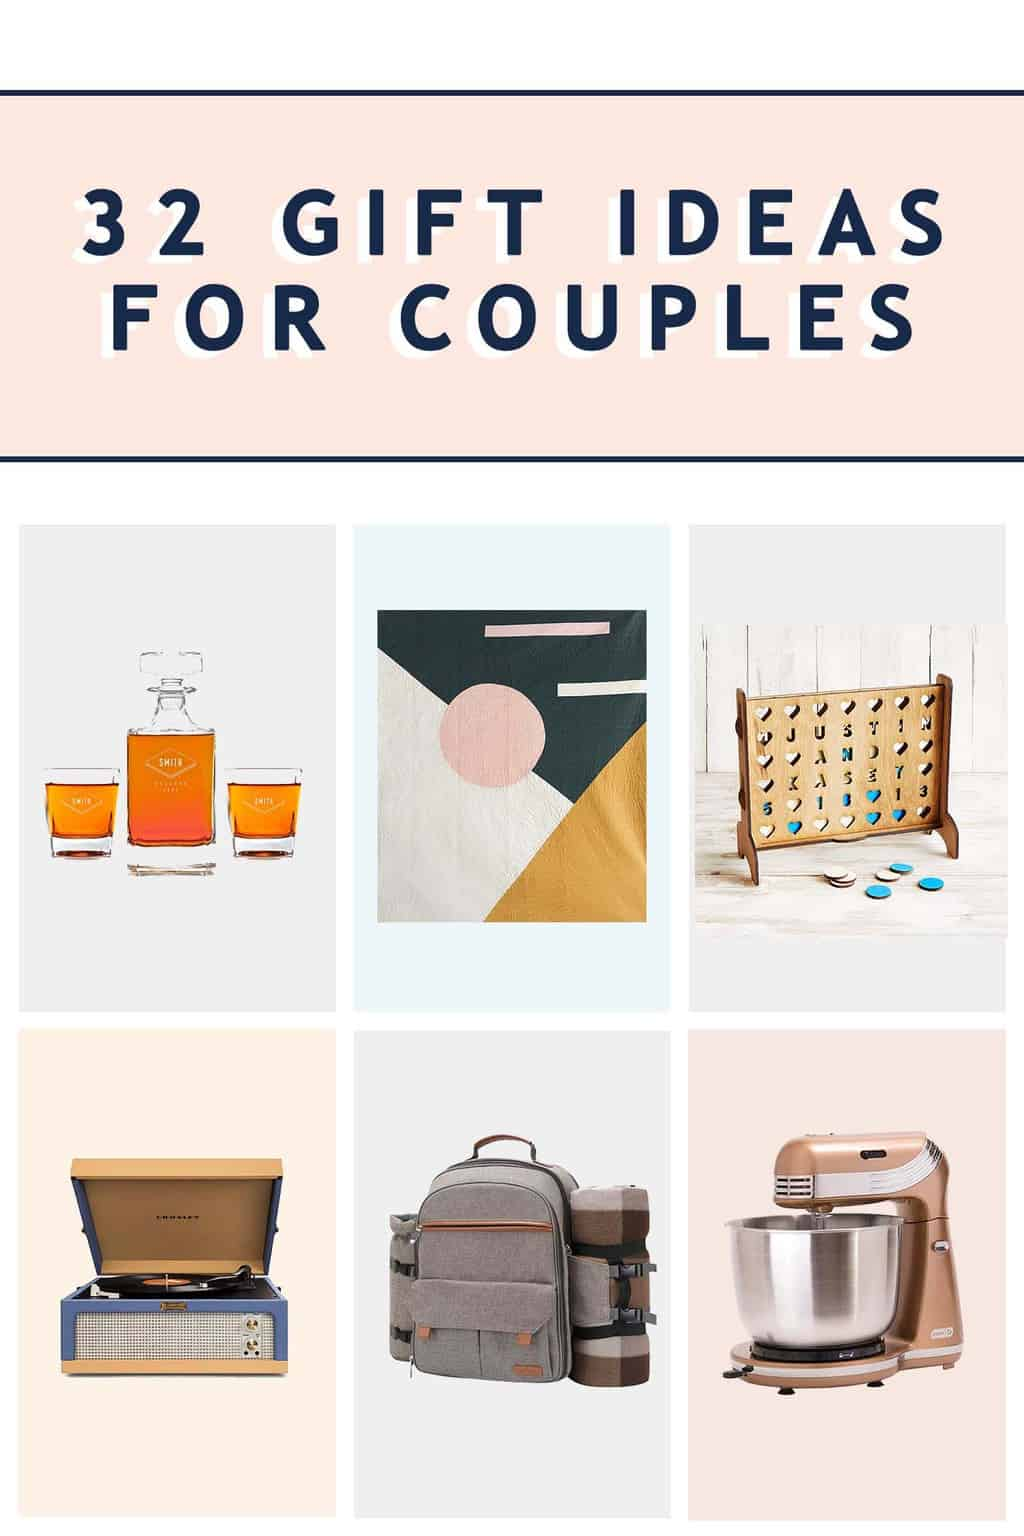 Gifts for Couples: 32 Gift Ideas for Couples by Sugar and Cloth - Header Image